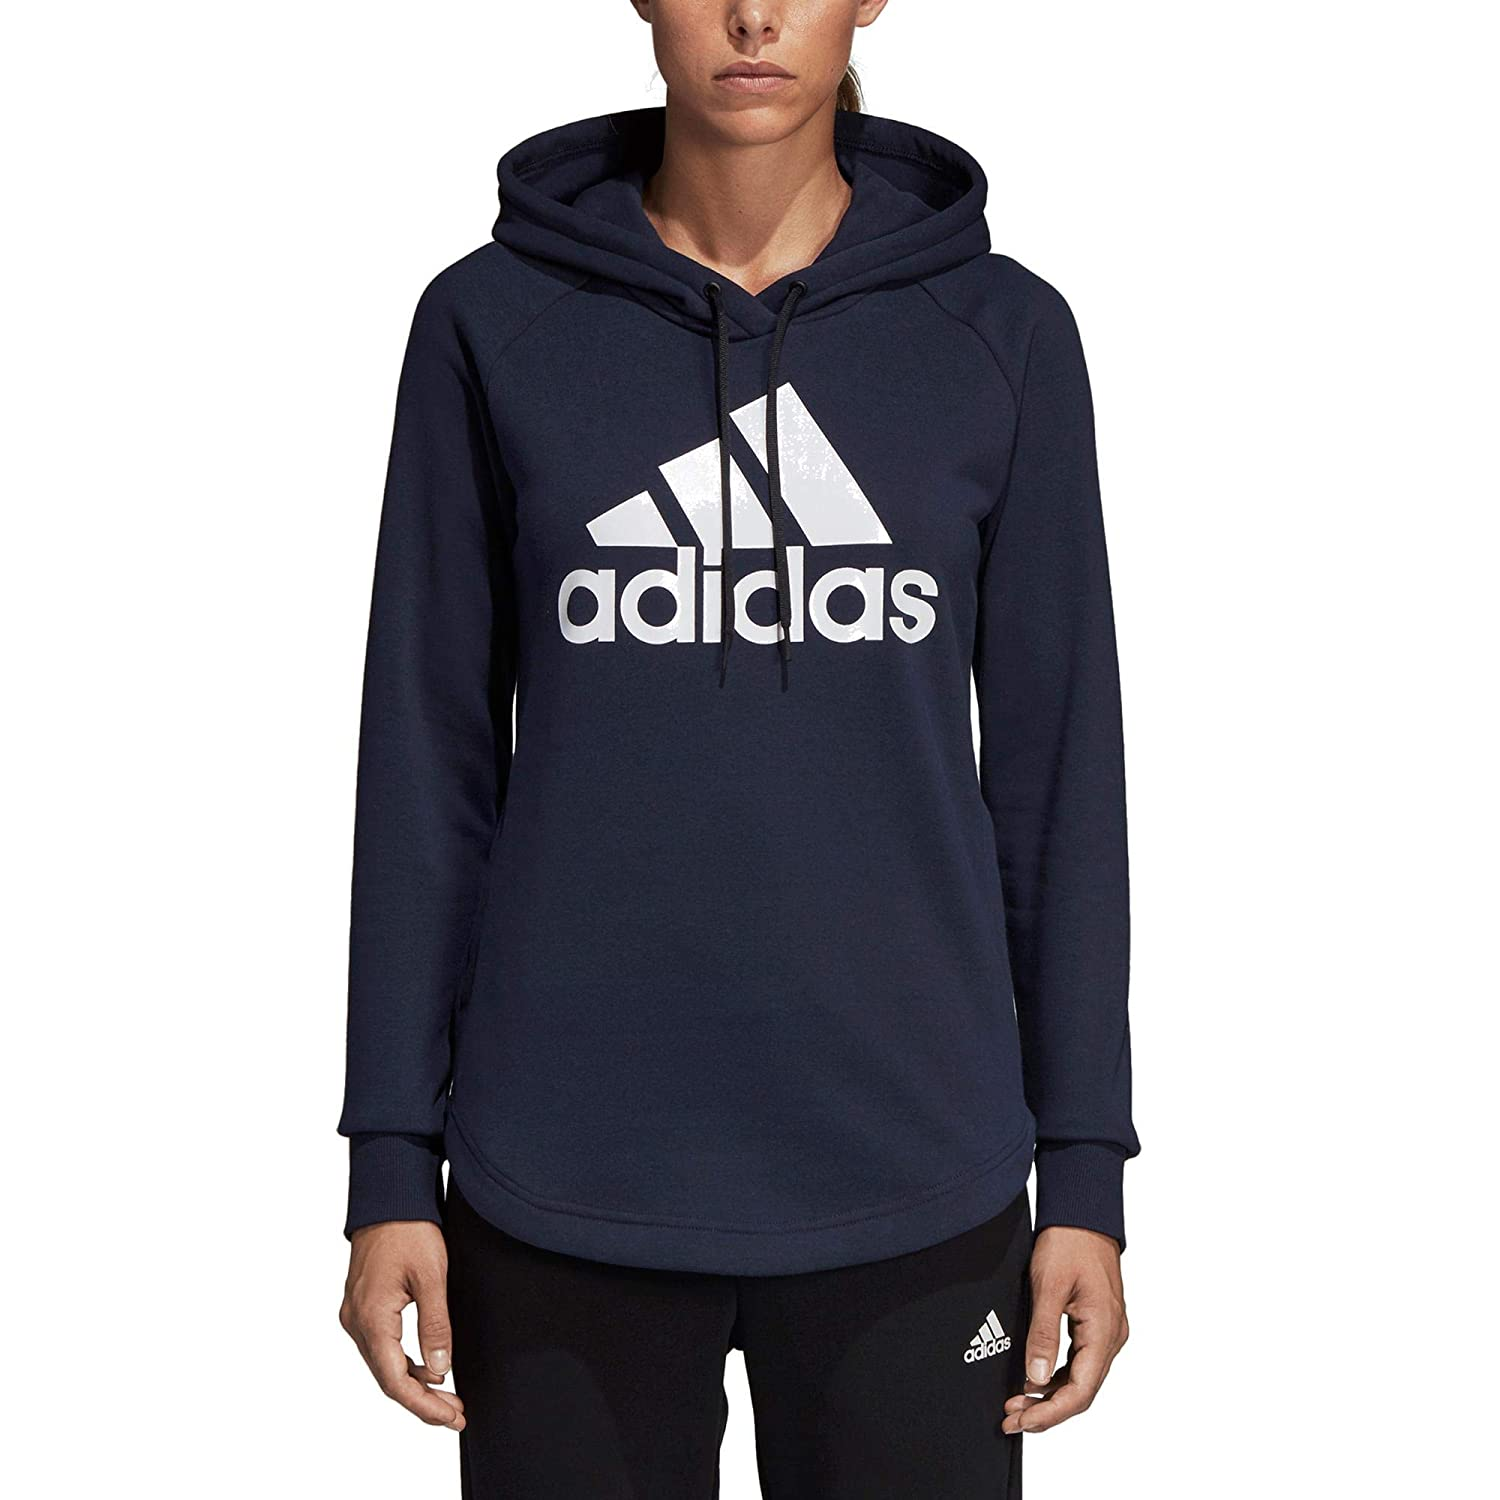 adidas Women s Must Haves Badge of Sport Hooded Sweatshirt  Amazon.co.uk   Sports   Outdoors e18b80e04a0